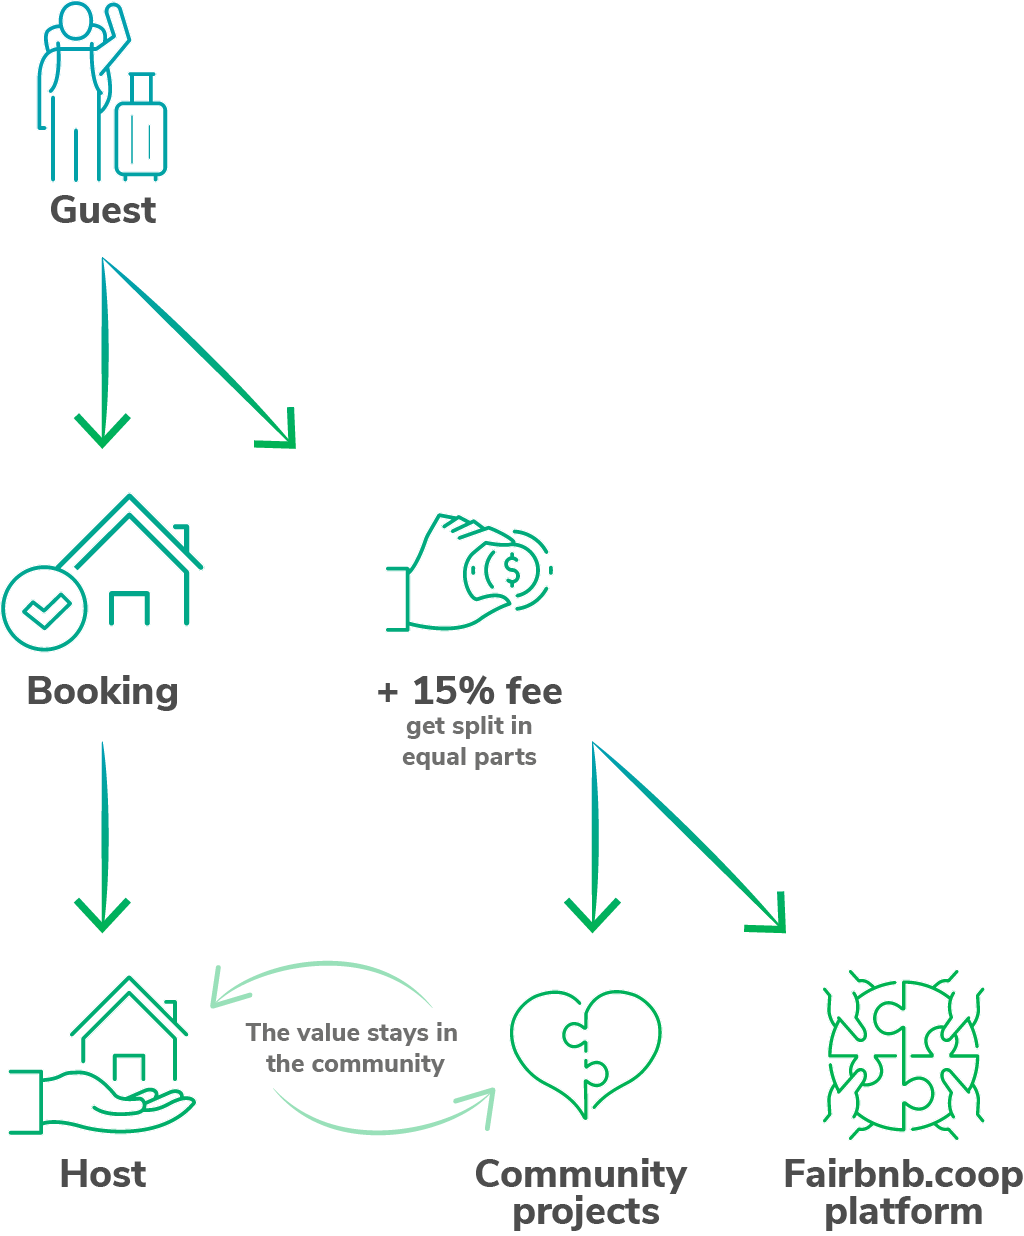 Fairbnb.coop How it works